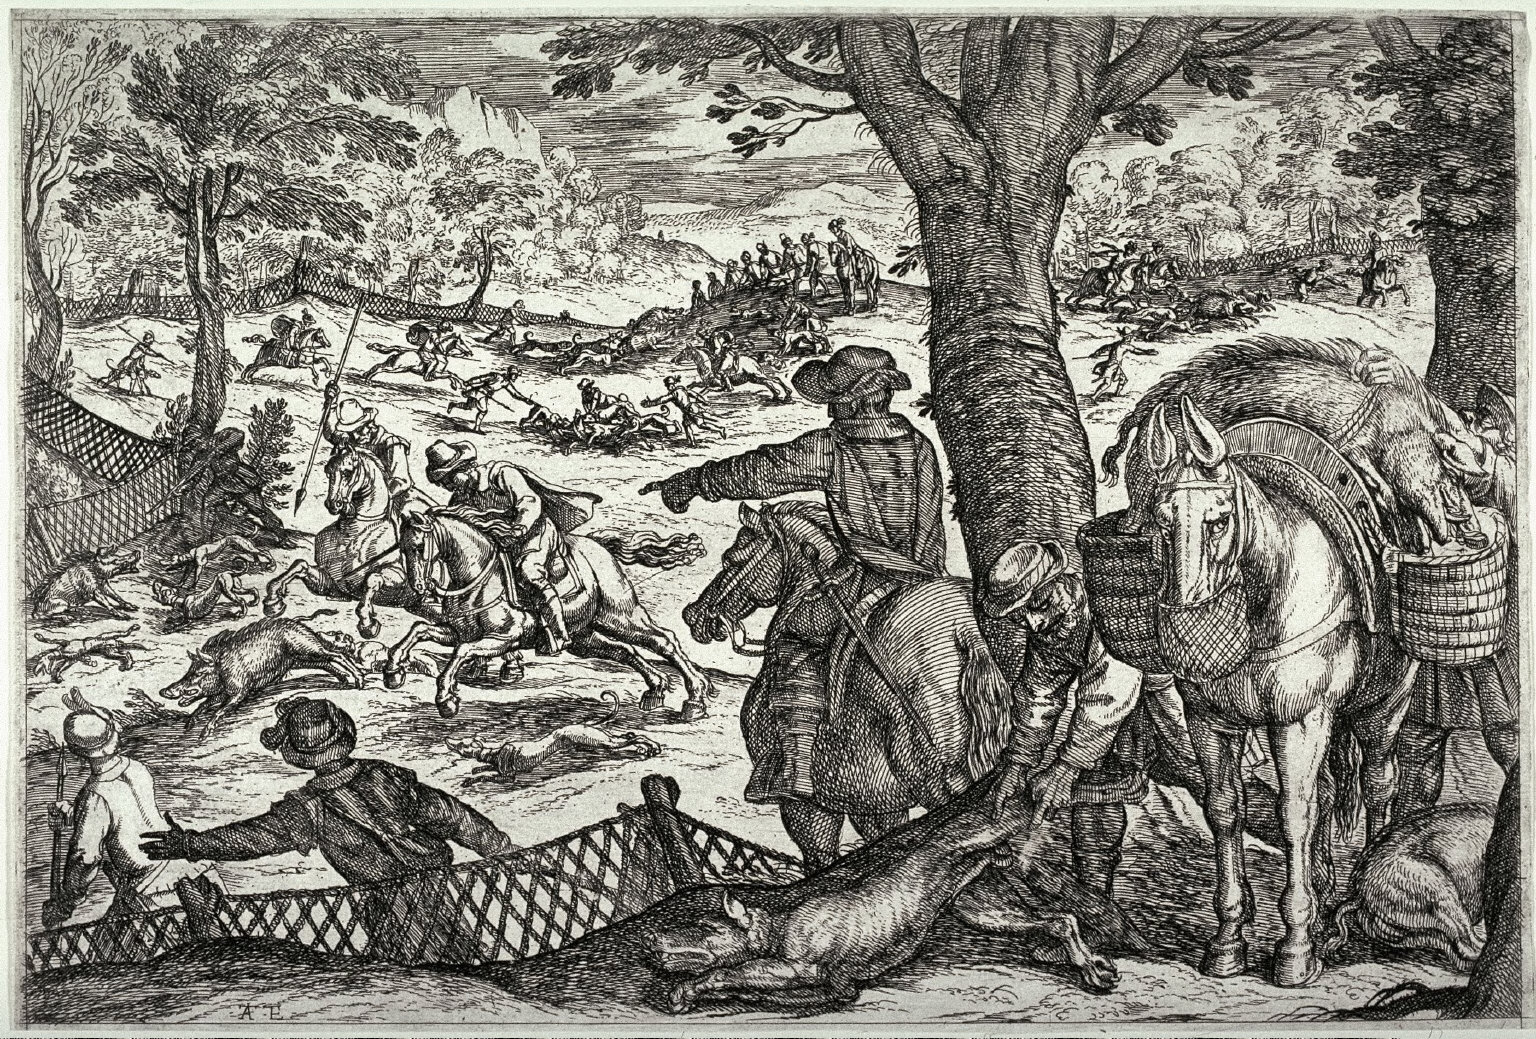 Boar Hunt, from the series Hunting Scenes VII